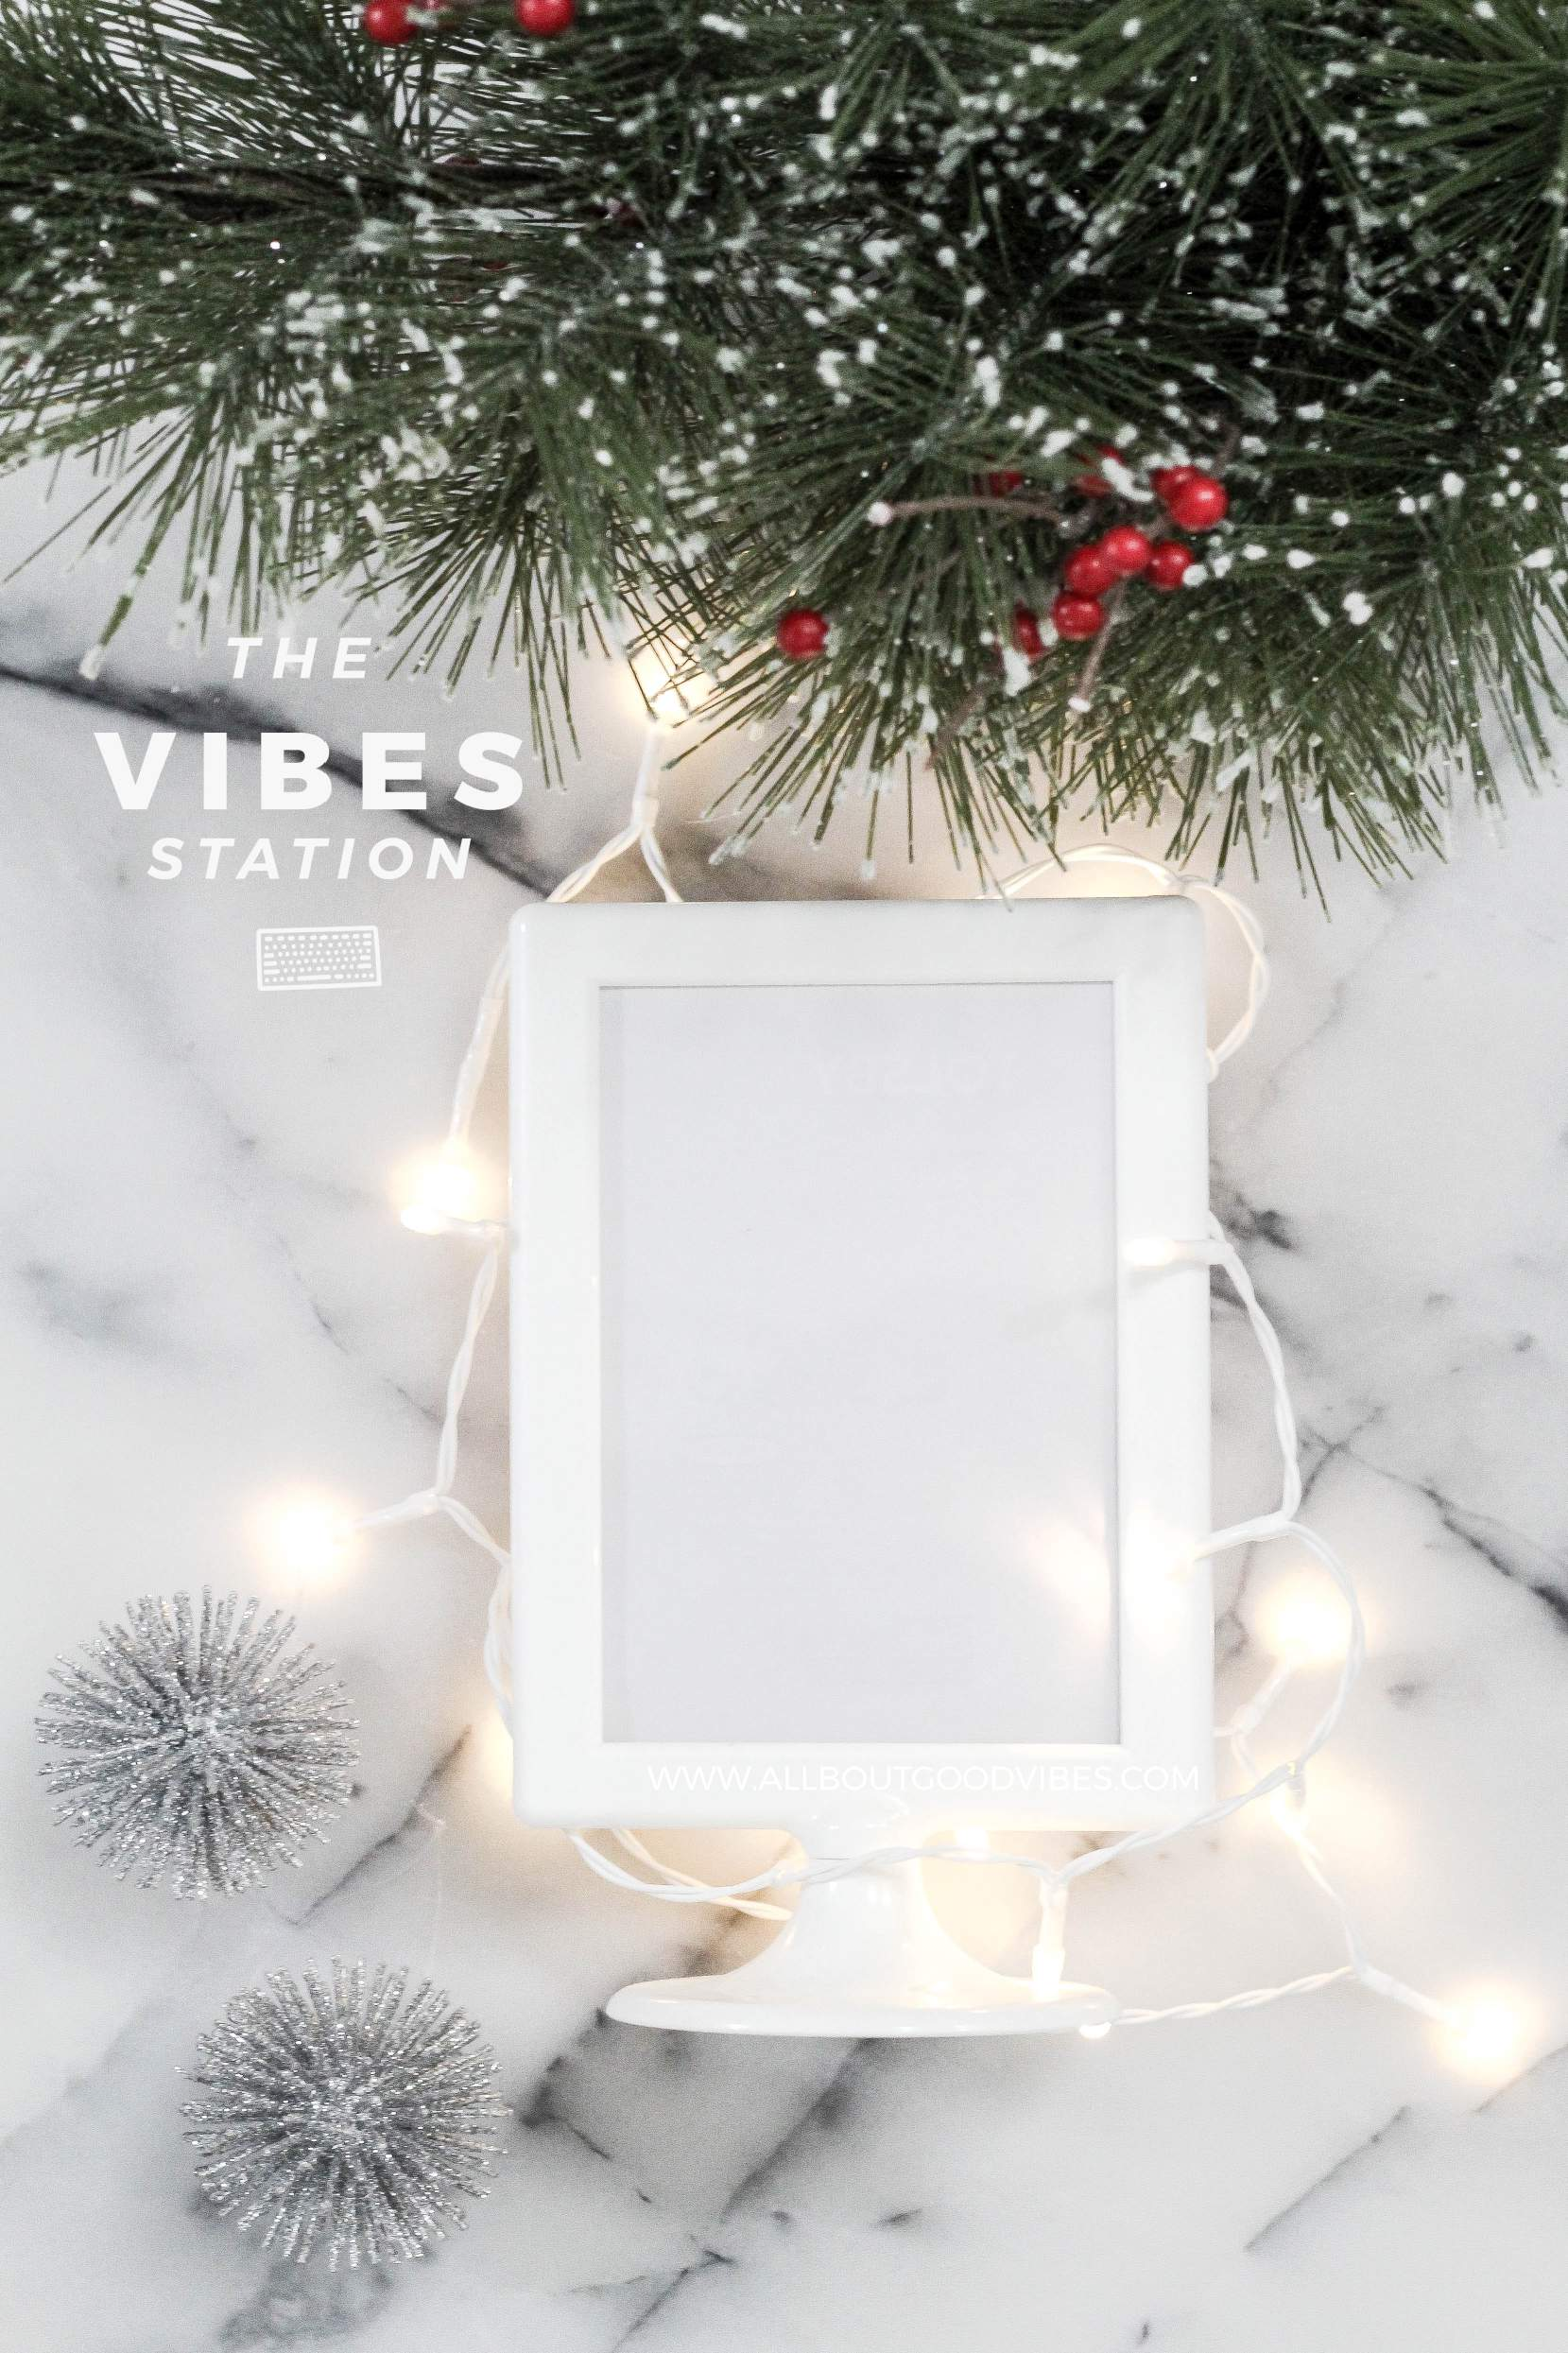 FREE_DOWNLOAD_Christmas Light and photo frame on marble Styled Stock Photo